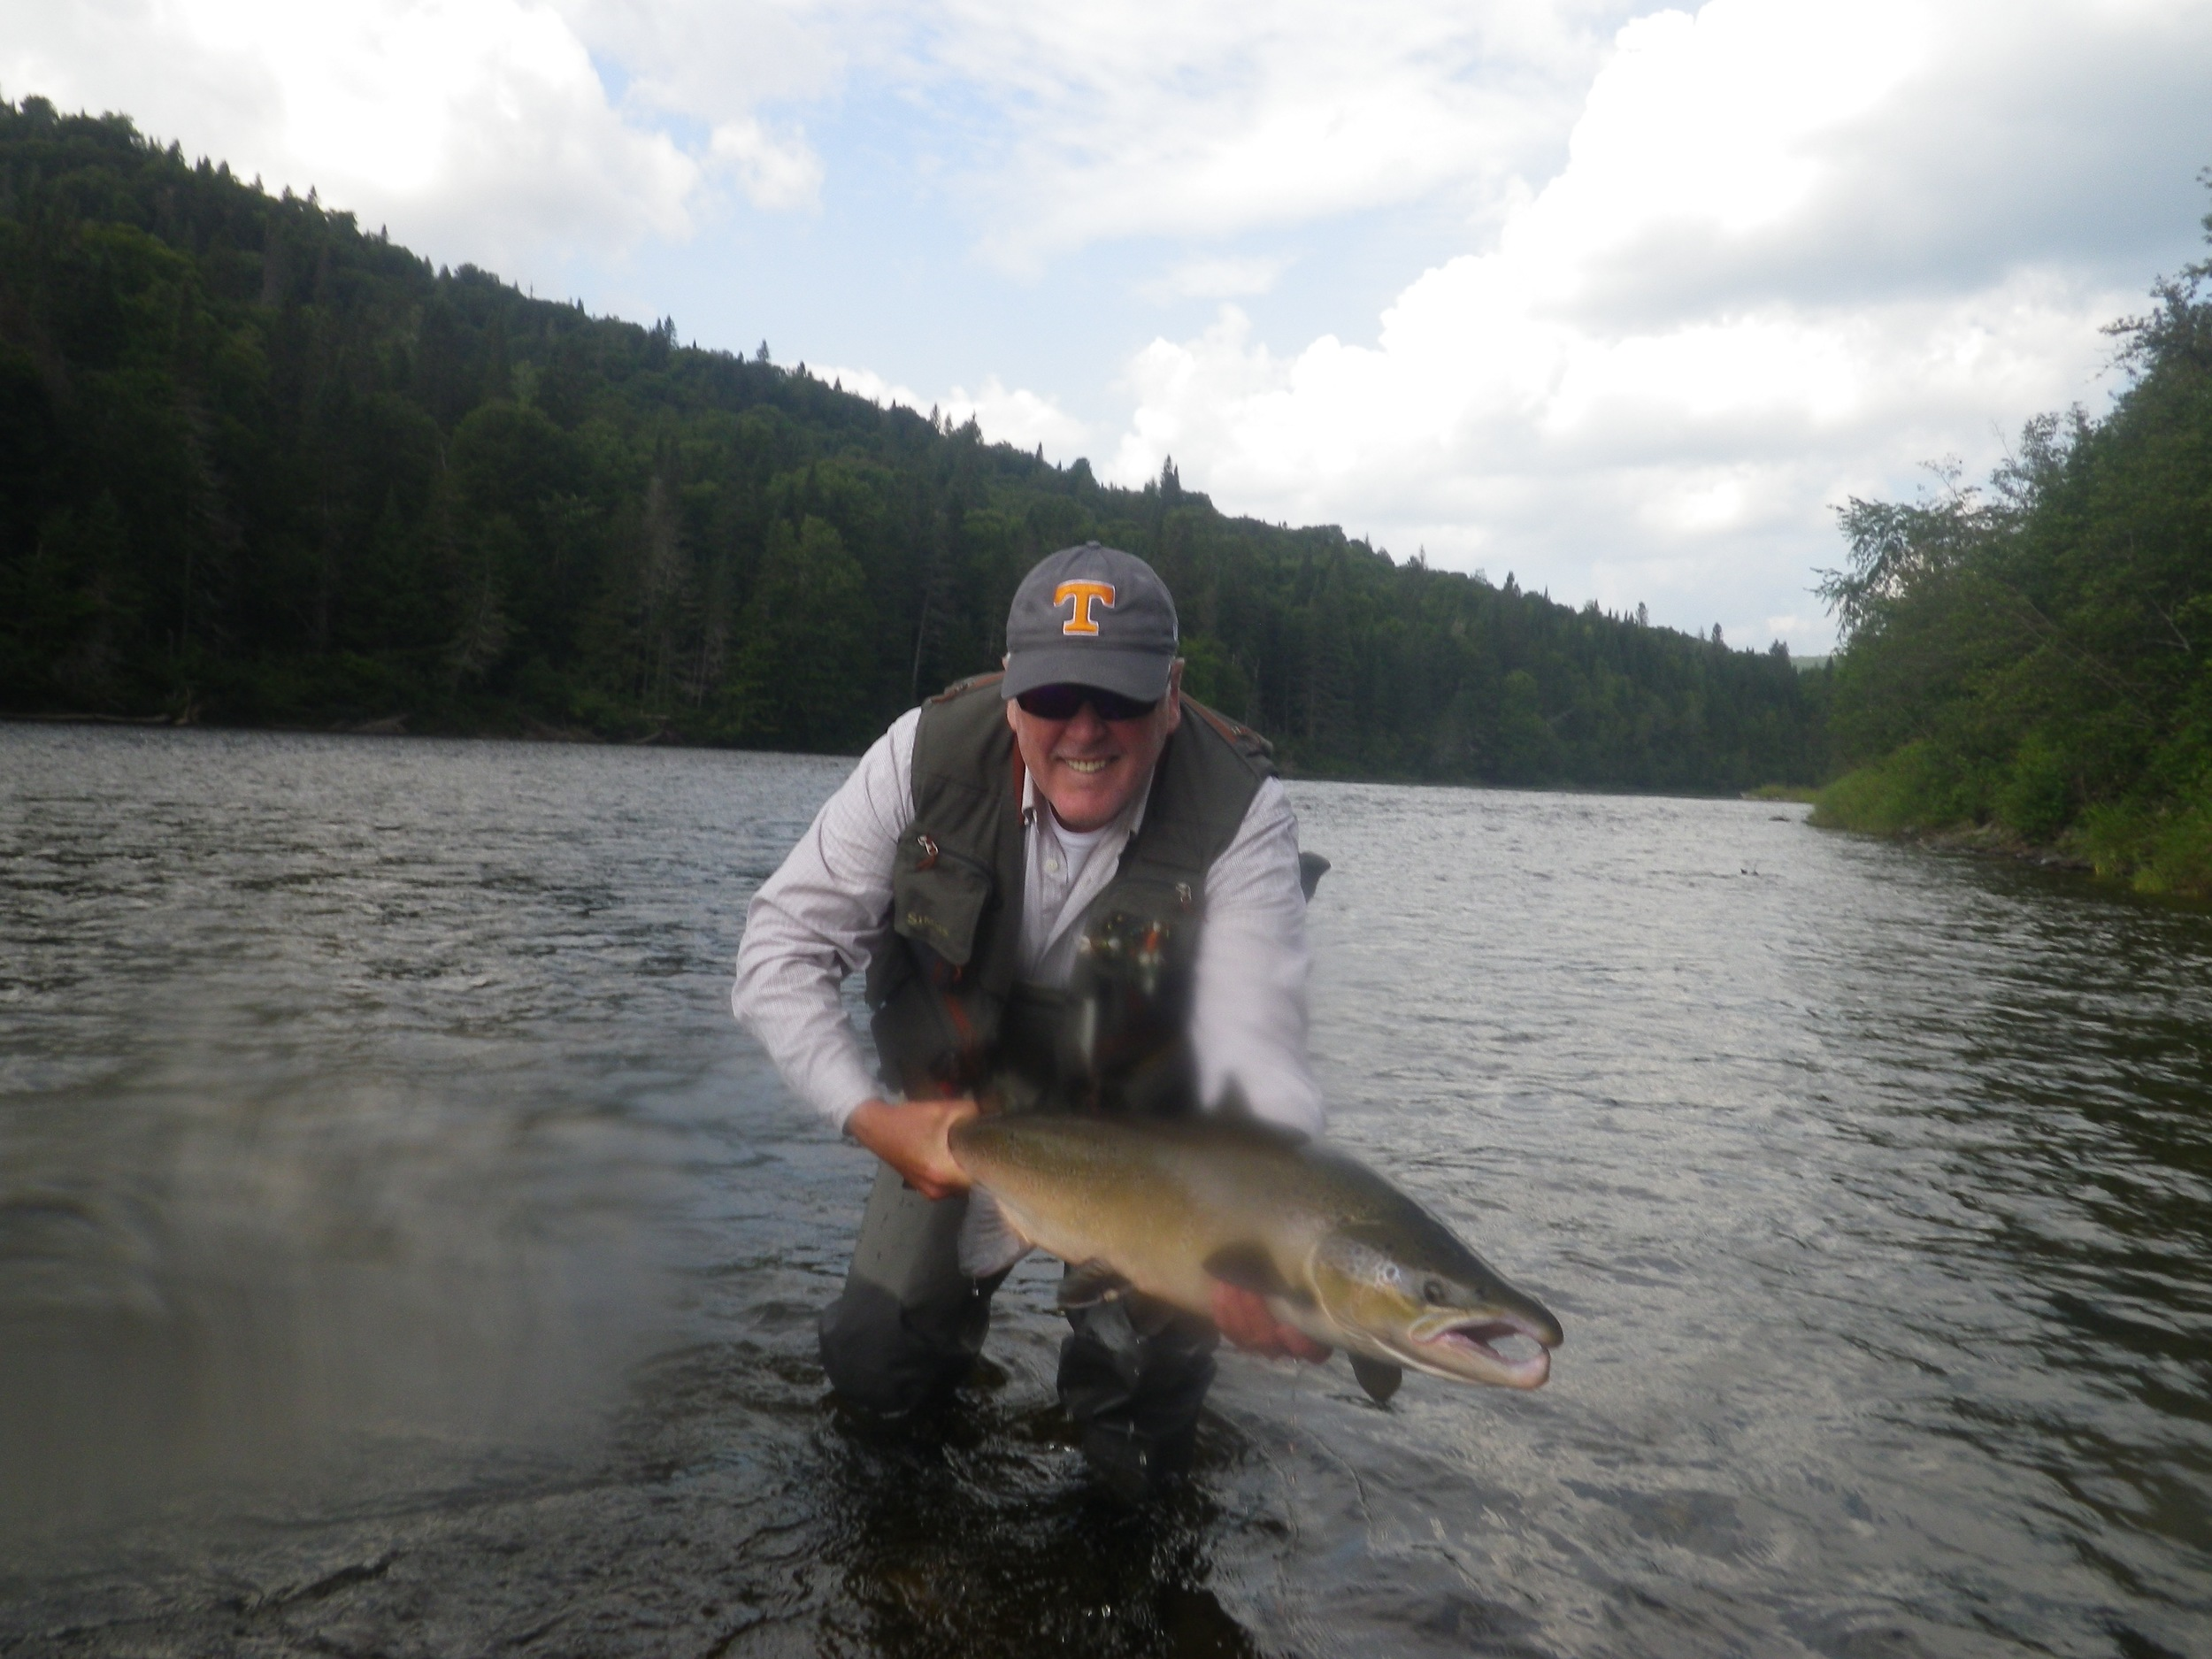 Nova Scotian Jim Dickson with his first  Grand Cascapedia salmon  of the season, nice one Jim!